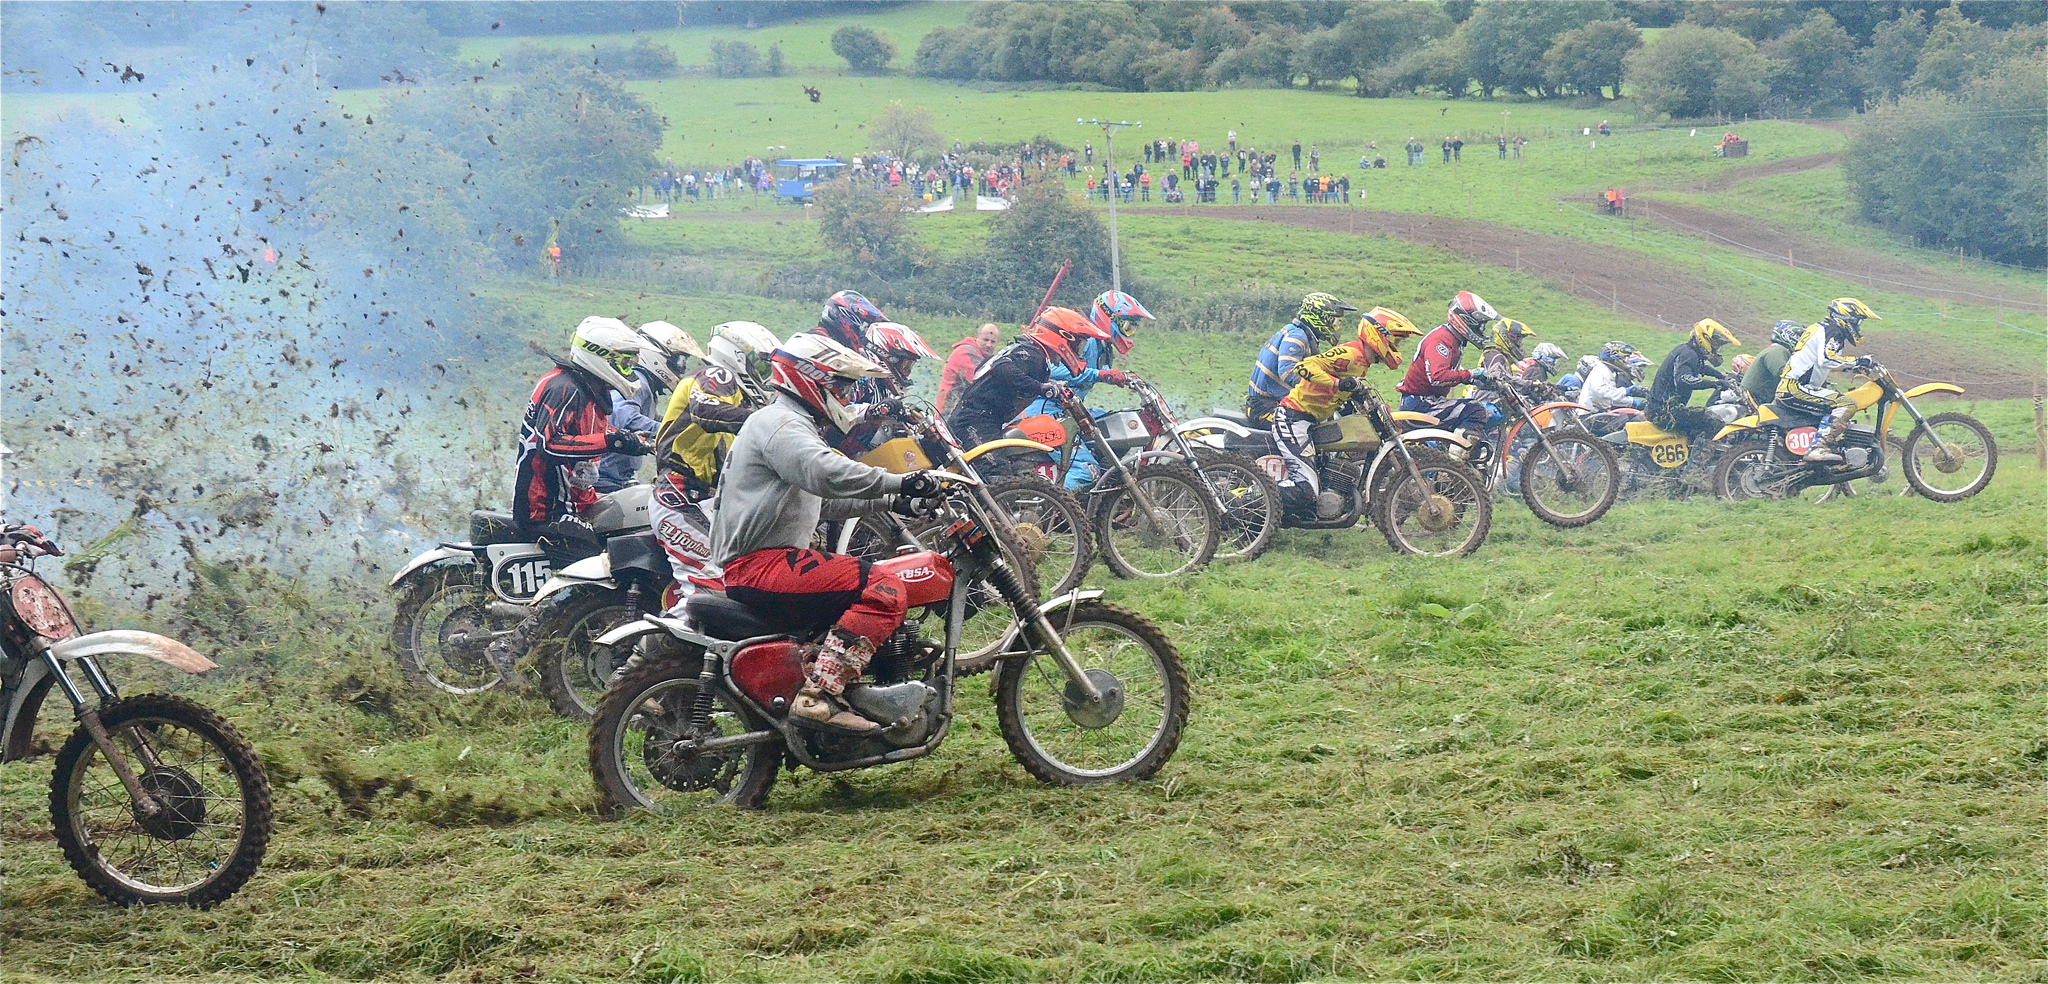 Llanthony Classic Scramble Photos September 2015 classicdirtbikerider.com..31